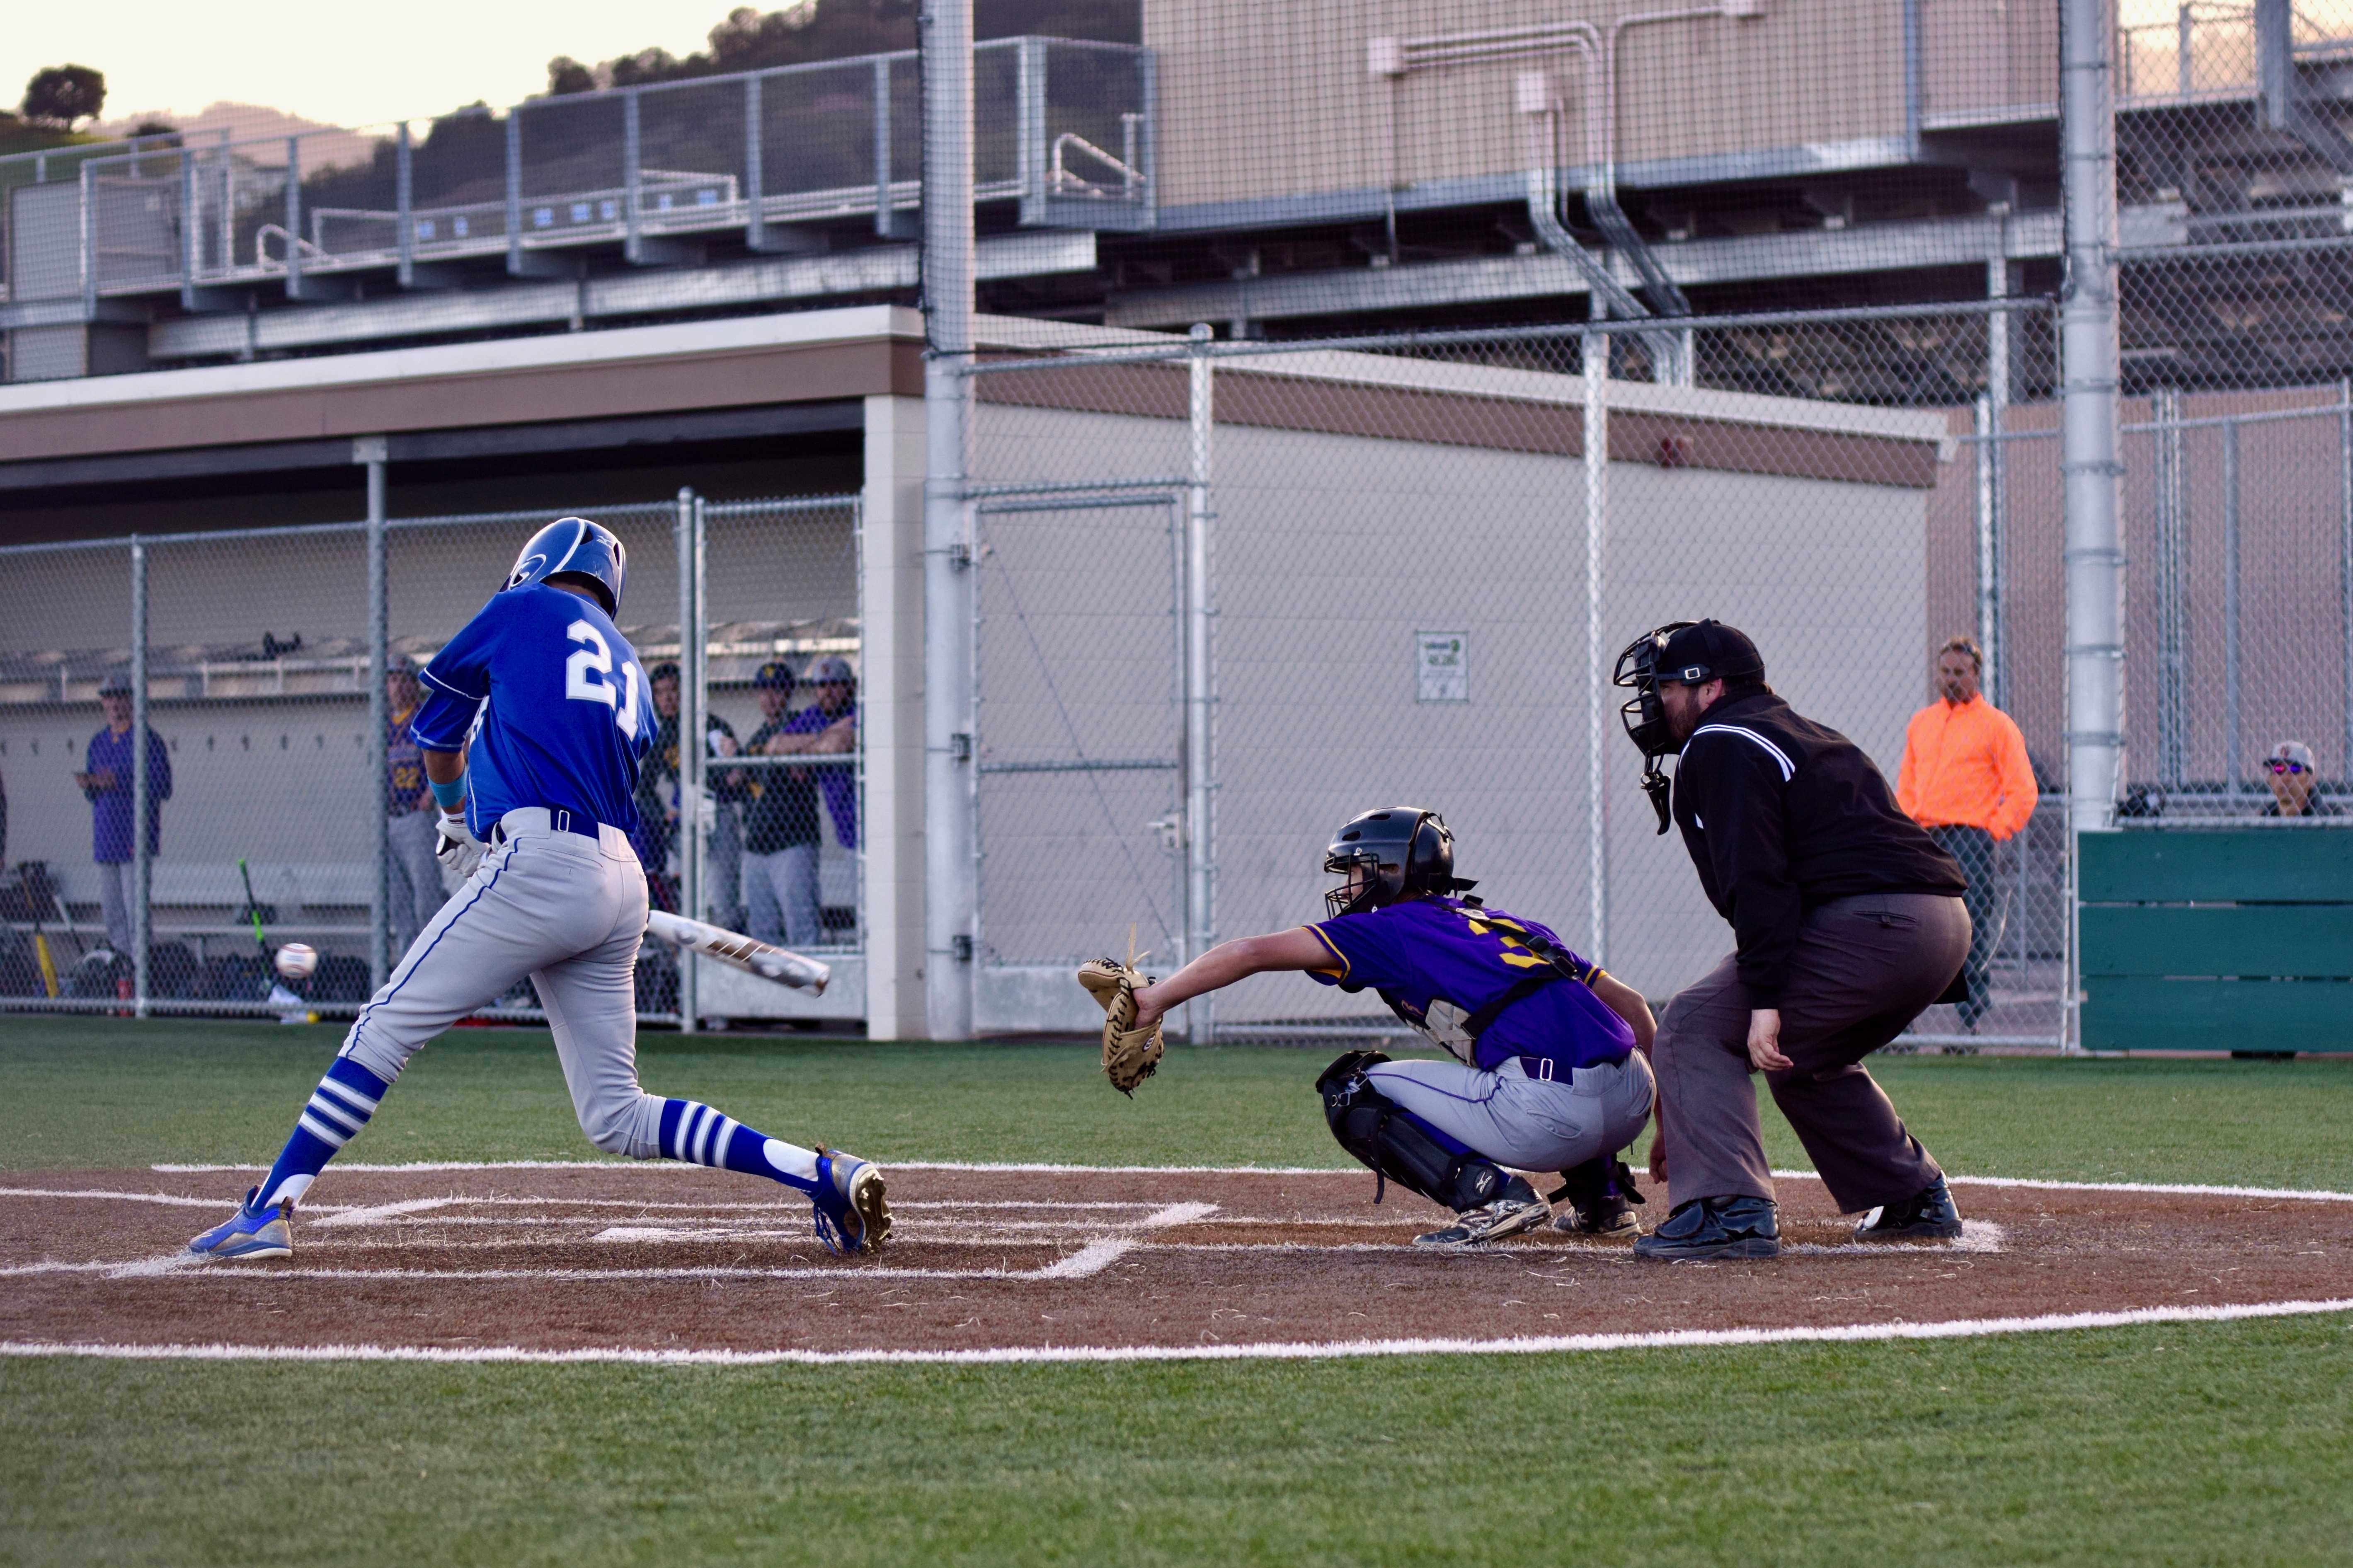 PHOTOS- Baseball vs Los Altos - 6